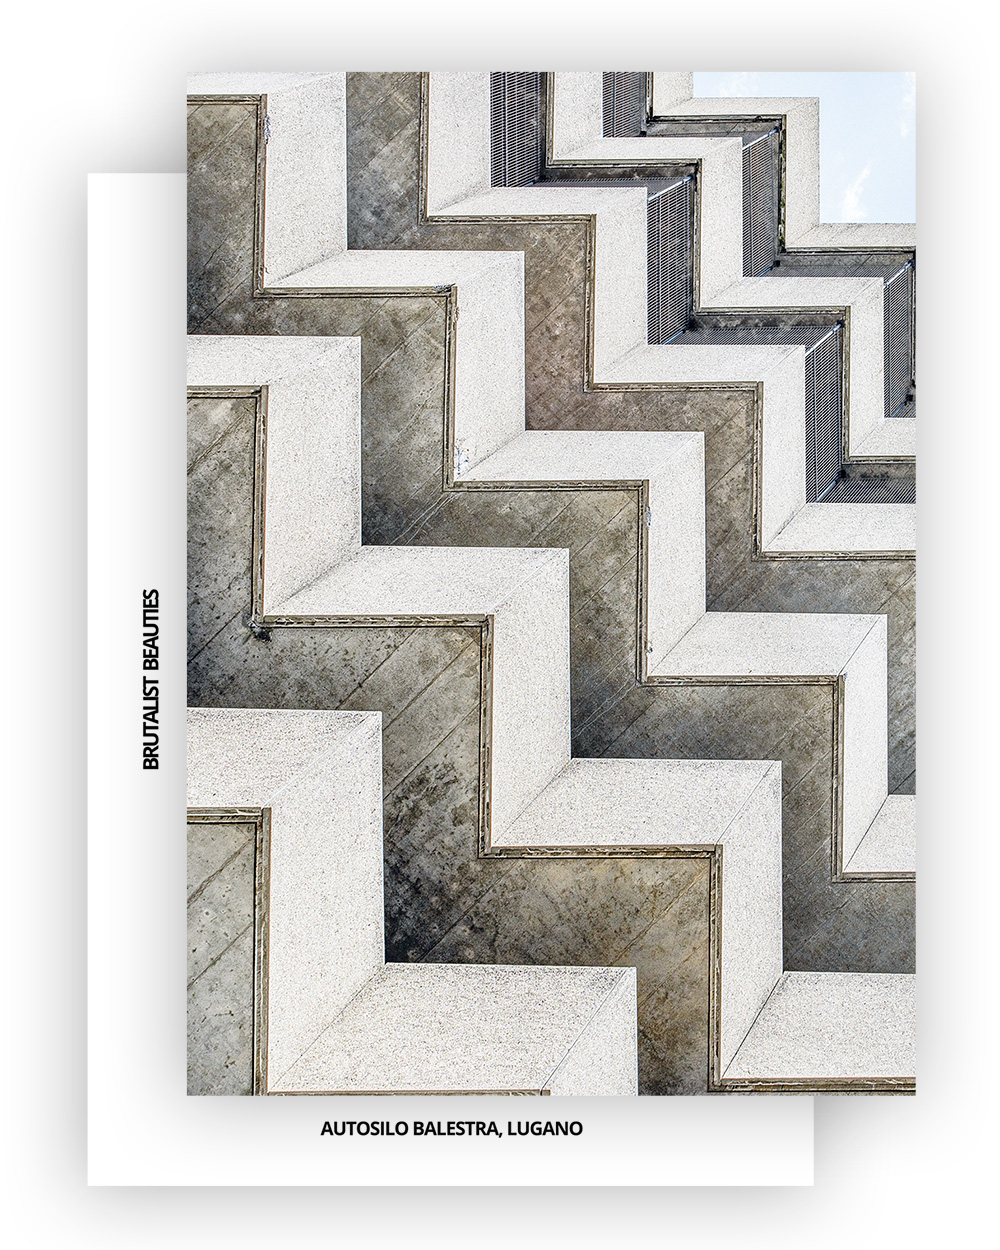 Brutalist Beauties 2, set of 6 postcards A6, Autosilo Balestra, Lugano, Swiss Brutalism I © Heartbrut / Karin Hunter Bürki